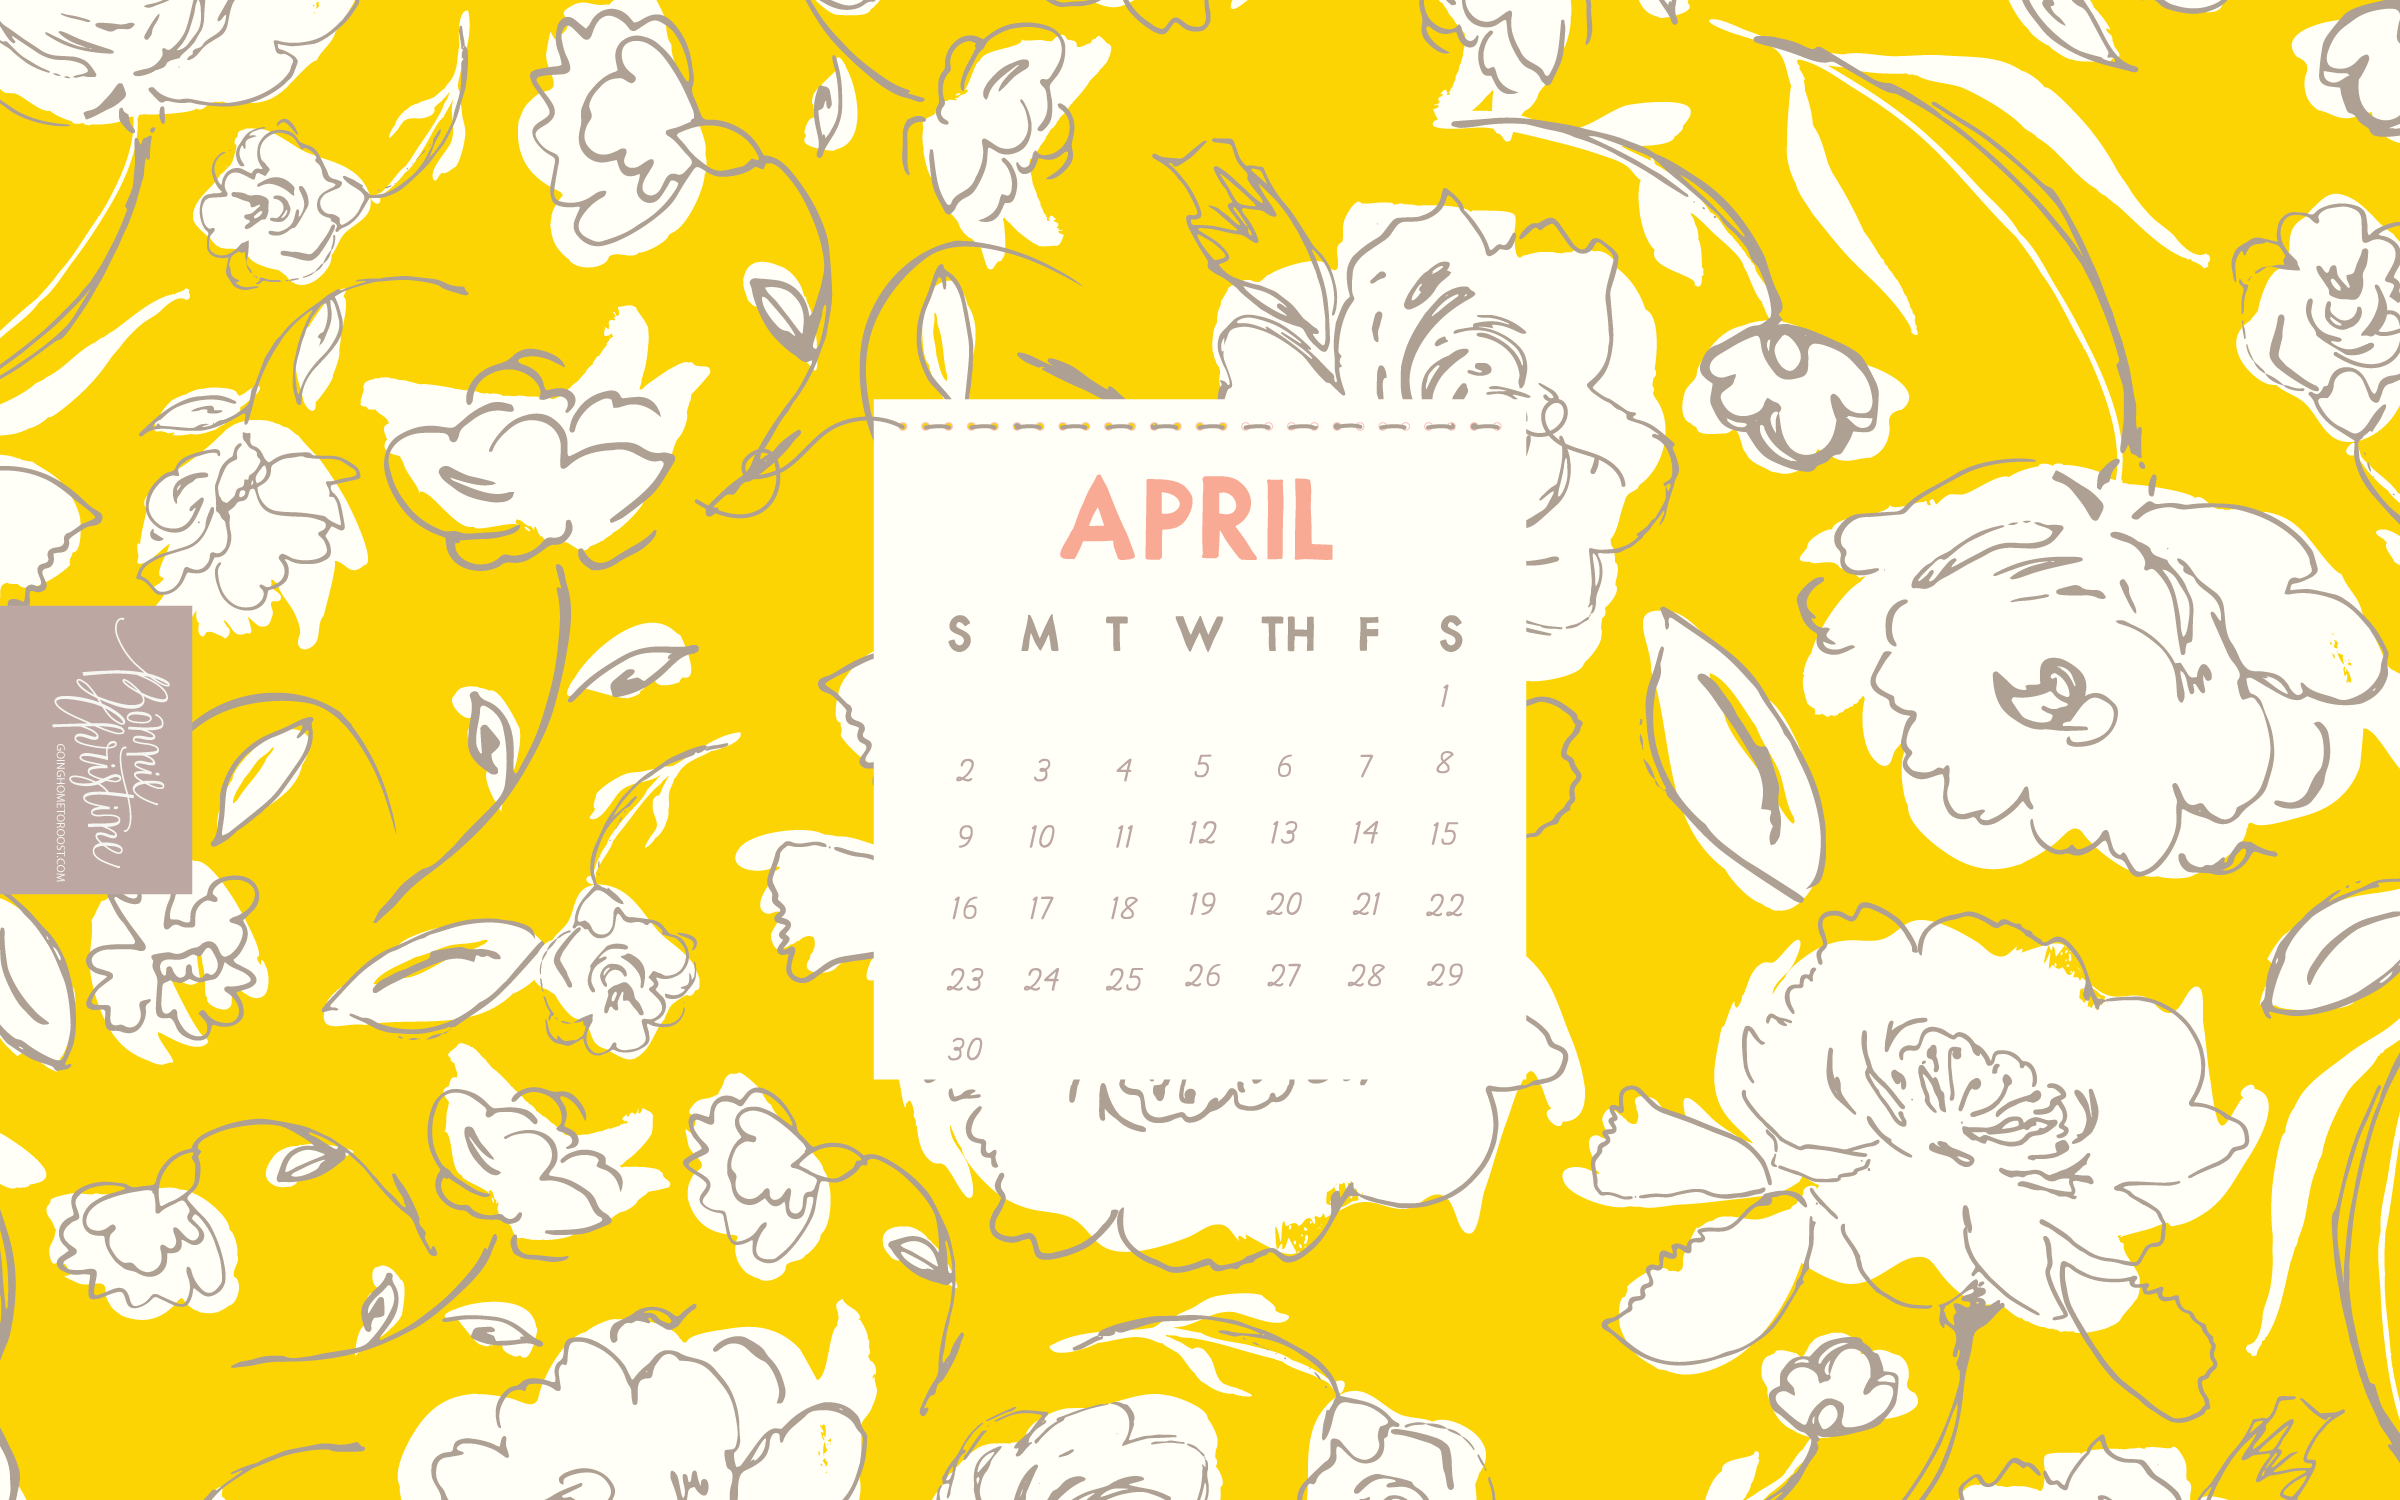 April Calendars 2017 by Bonnie Christine (3)